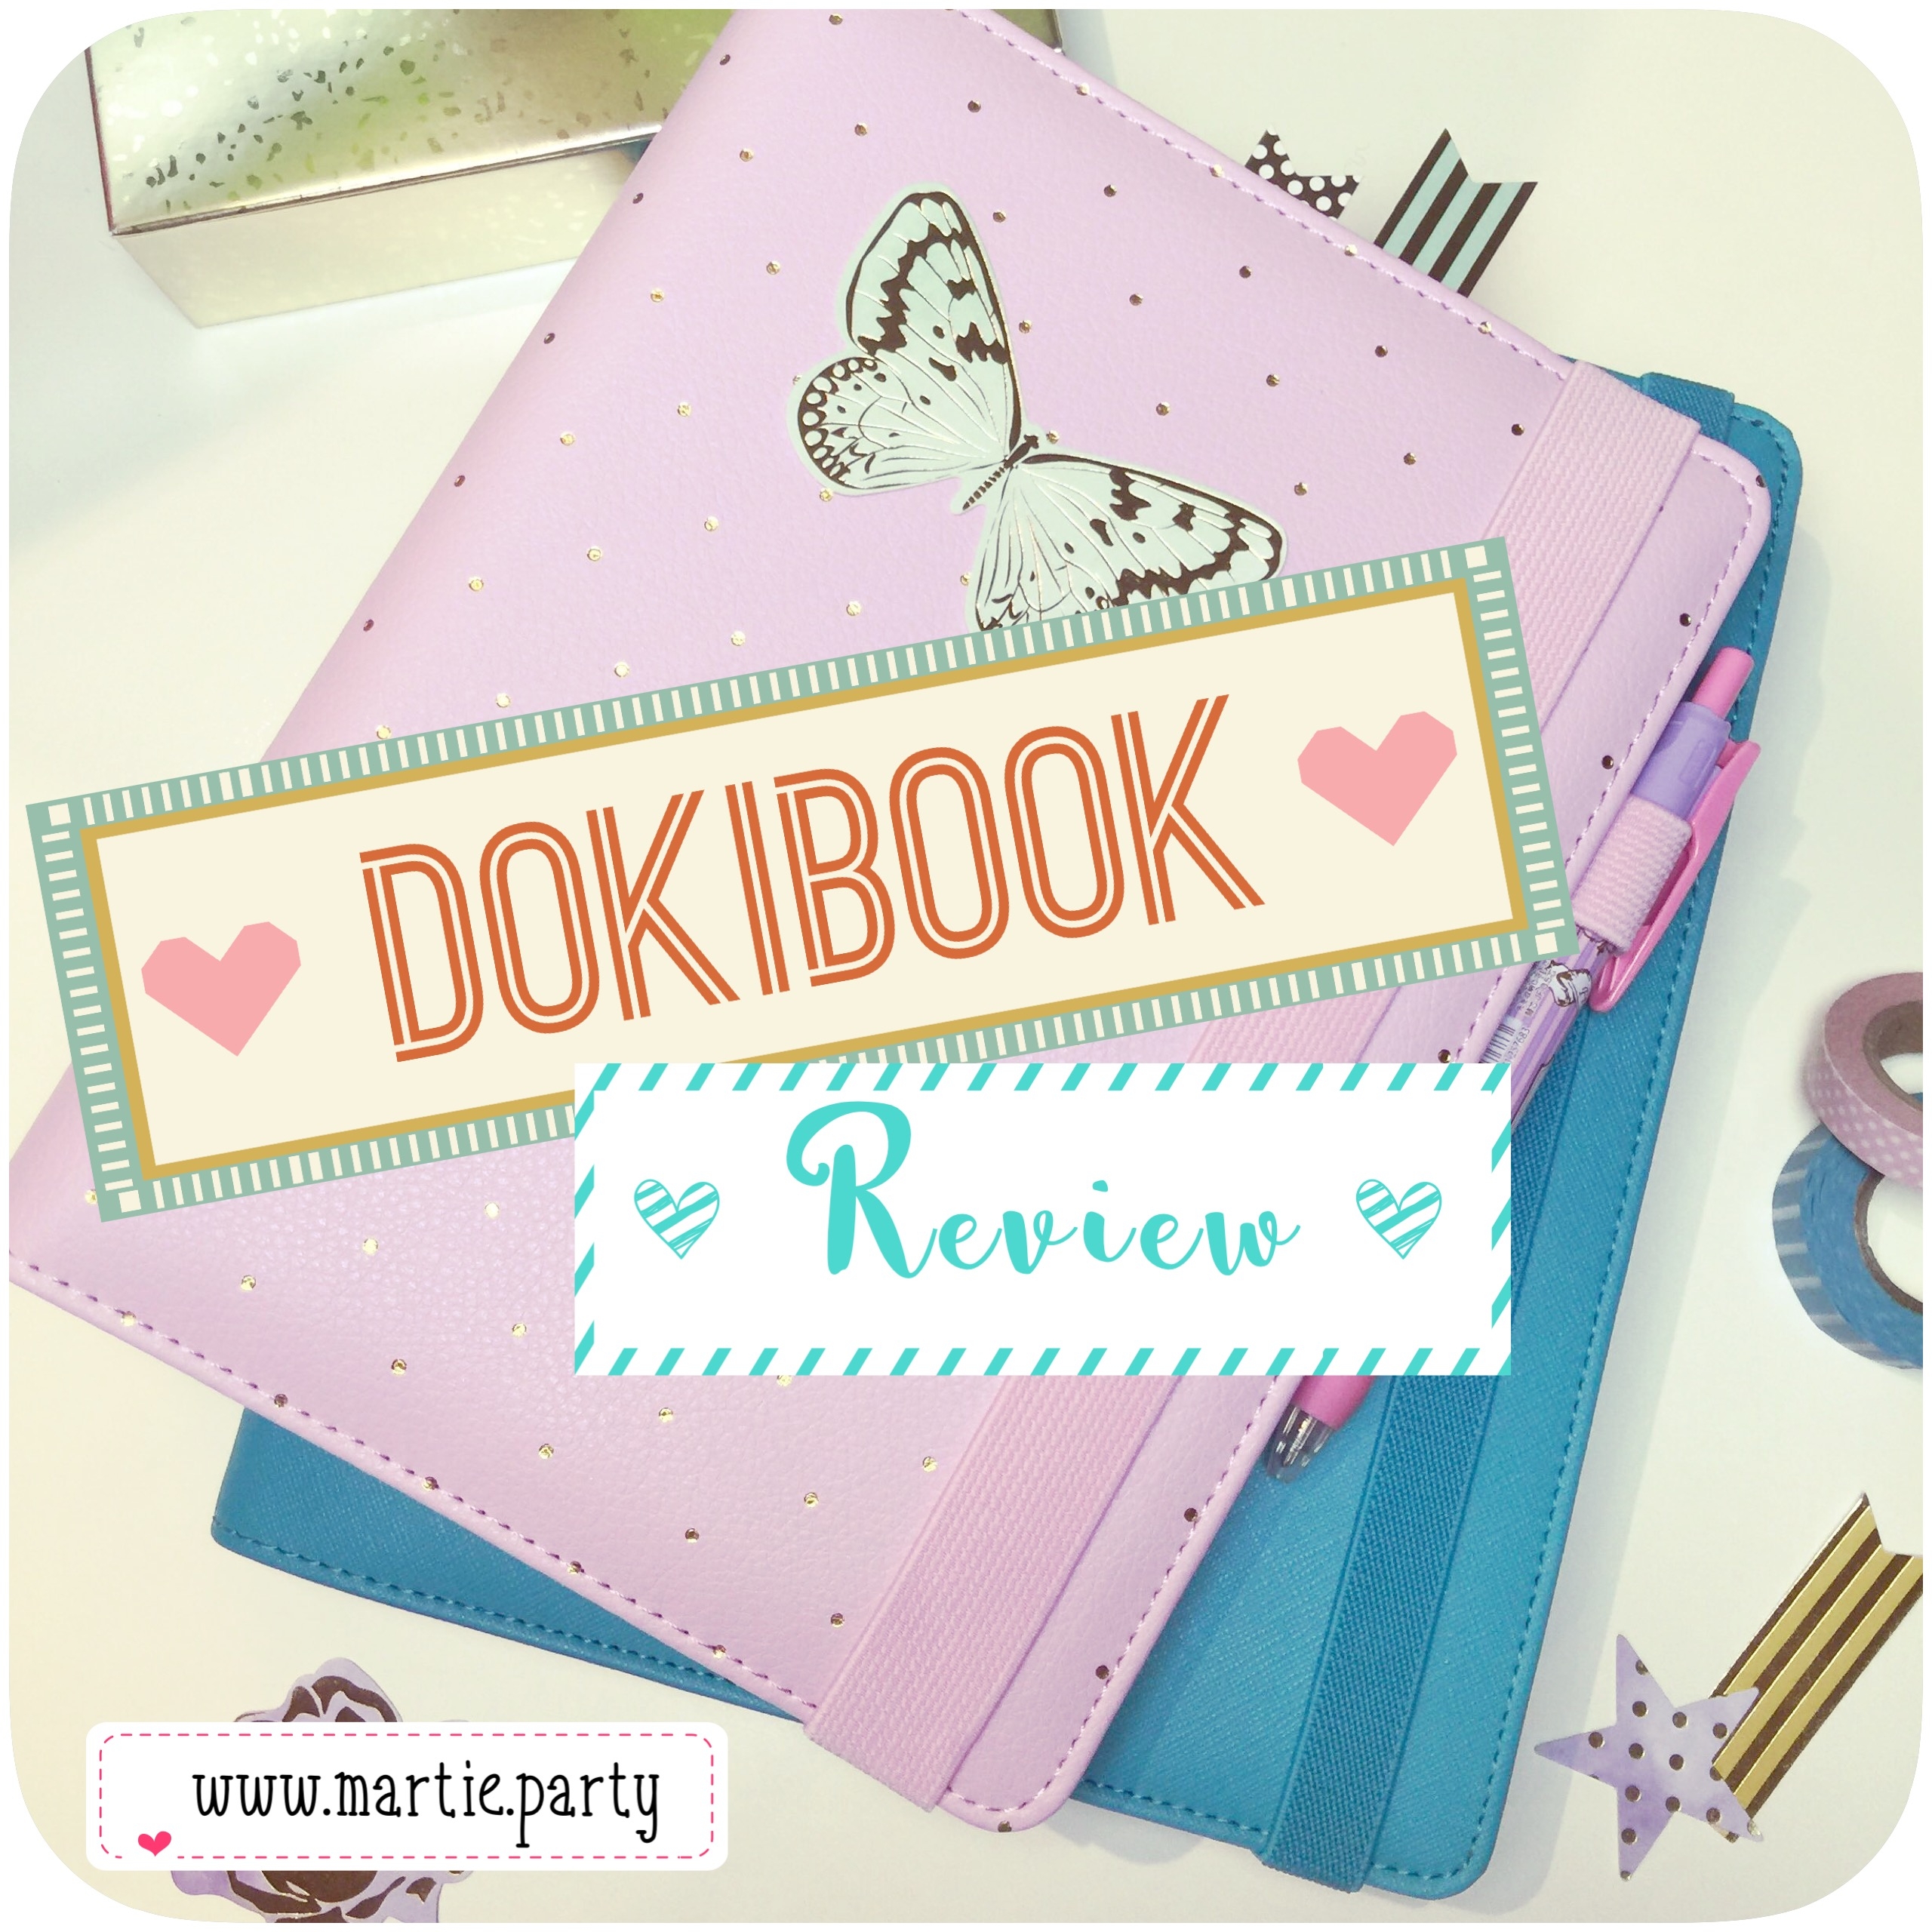 Dokibook review image.